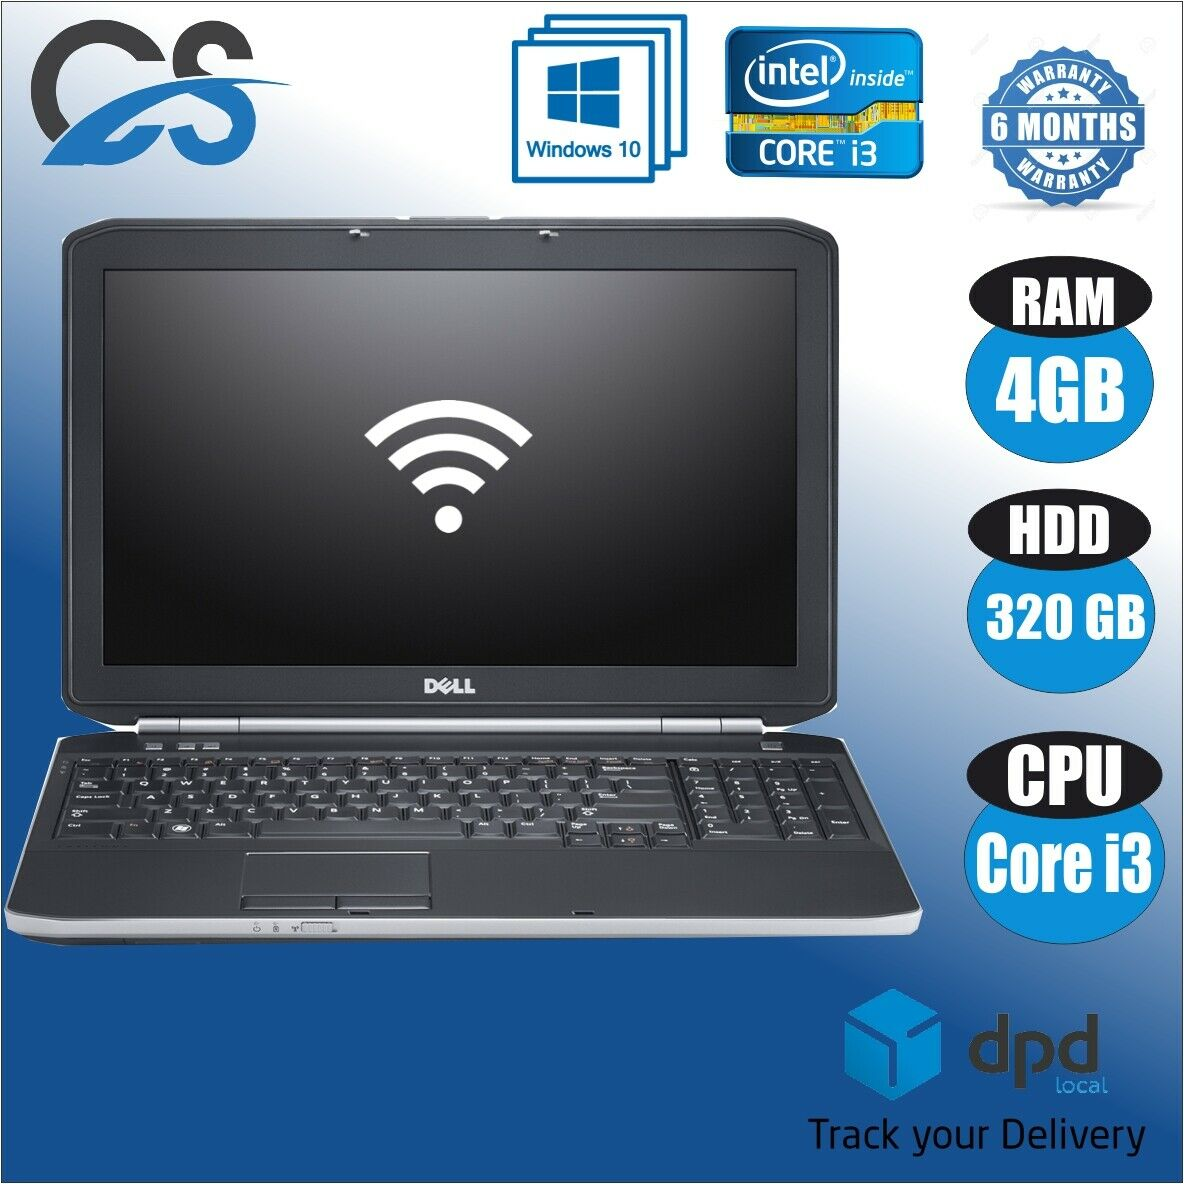 "Laptop Windows - FAST DELL LATITUDE E5530 i3-2348M 2.30GHz 4GB 320GB HDD 15.6"" WINDOWS 10 PRO"